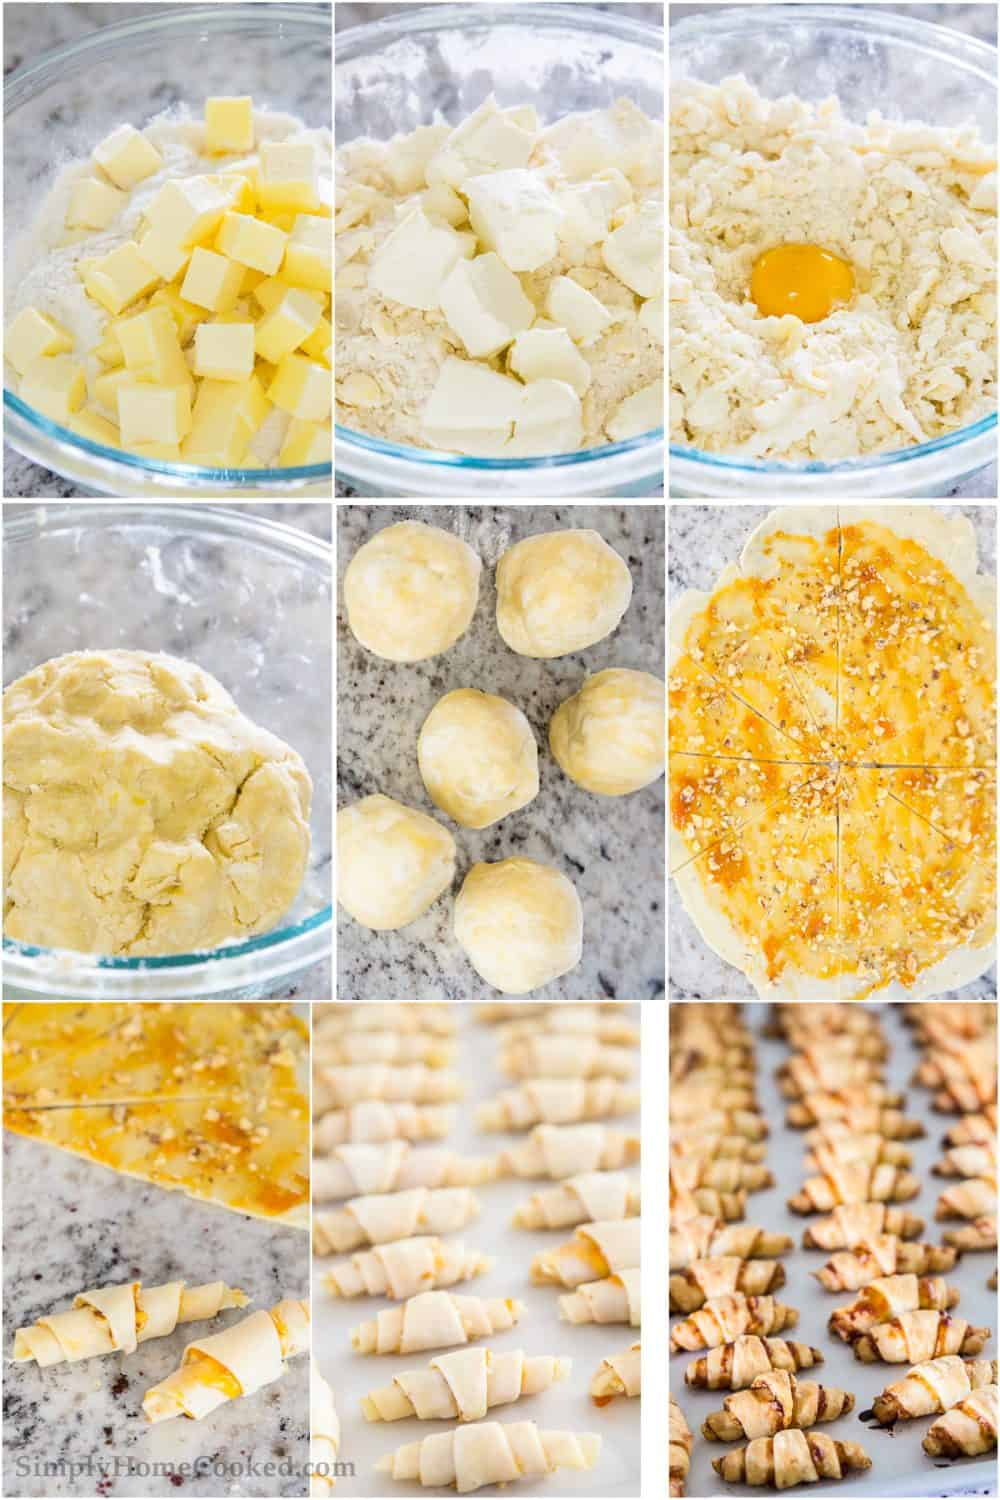 steps to make apricot walnut rugealch cookies